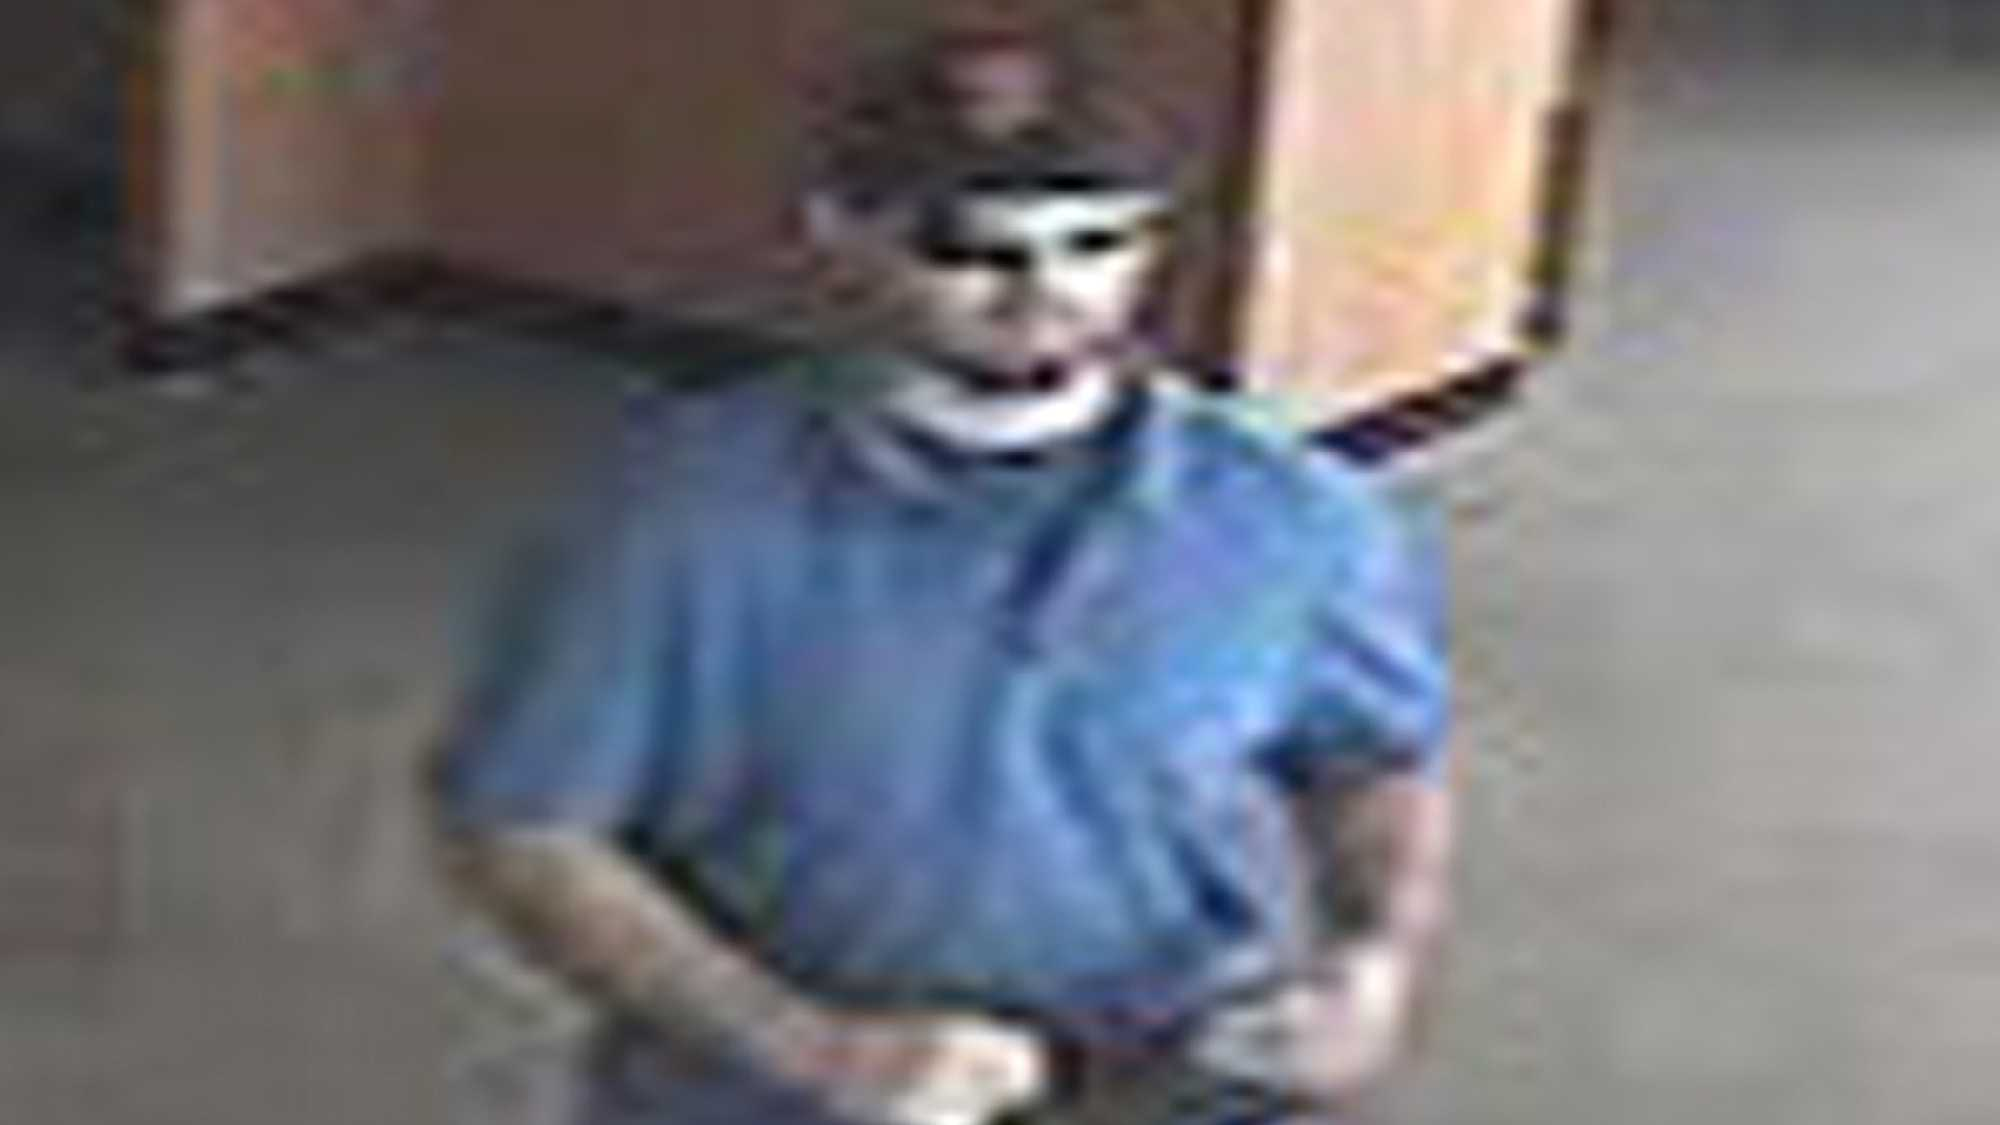 Police are looking for a man suspected of robbing a Chase bank in Elk Grove on Tuesday.